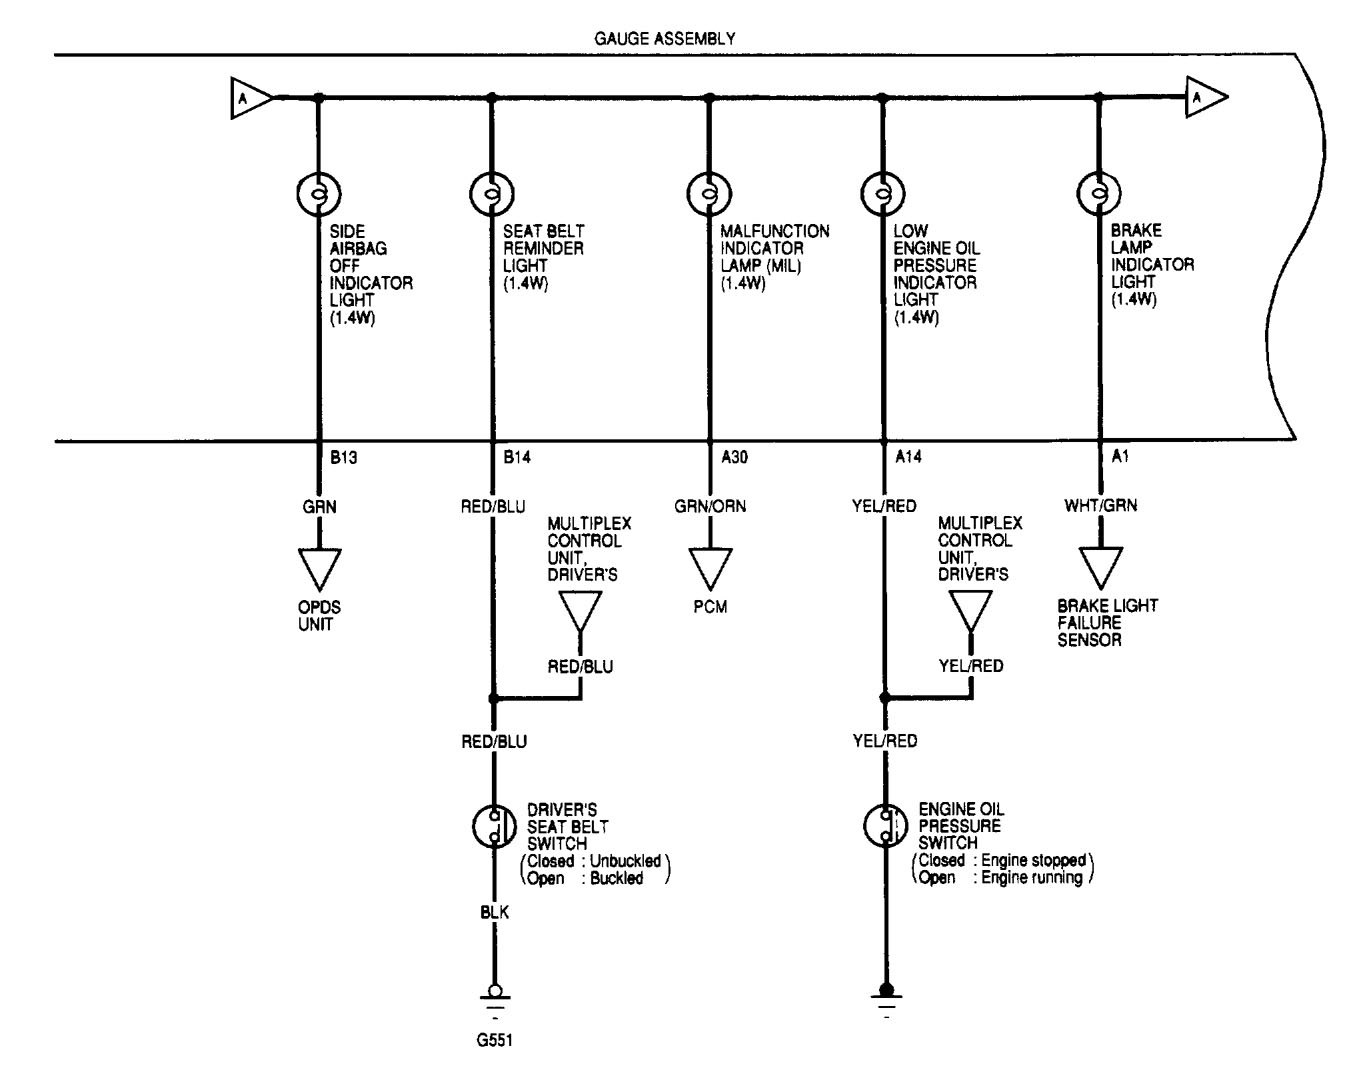 Acura TL (2002) - wiring diagrams - instrumentation - Carknowledge.info   Acura Tail Light Wiring Diagram      Carknowledge.info